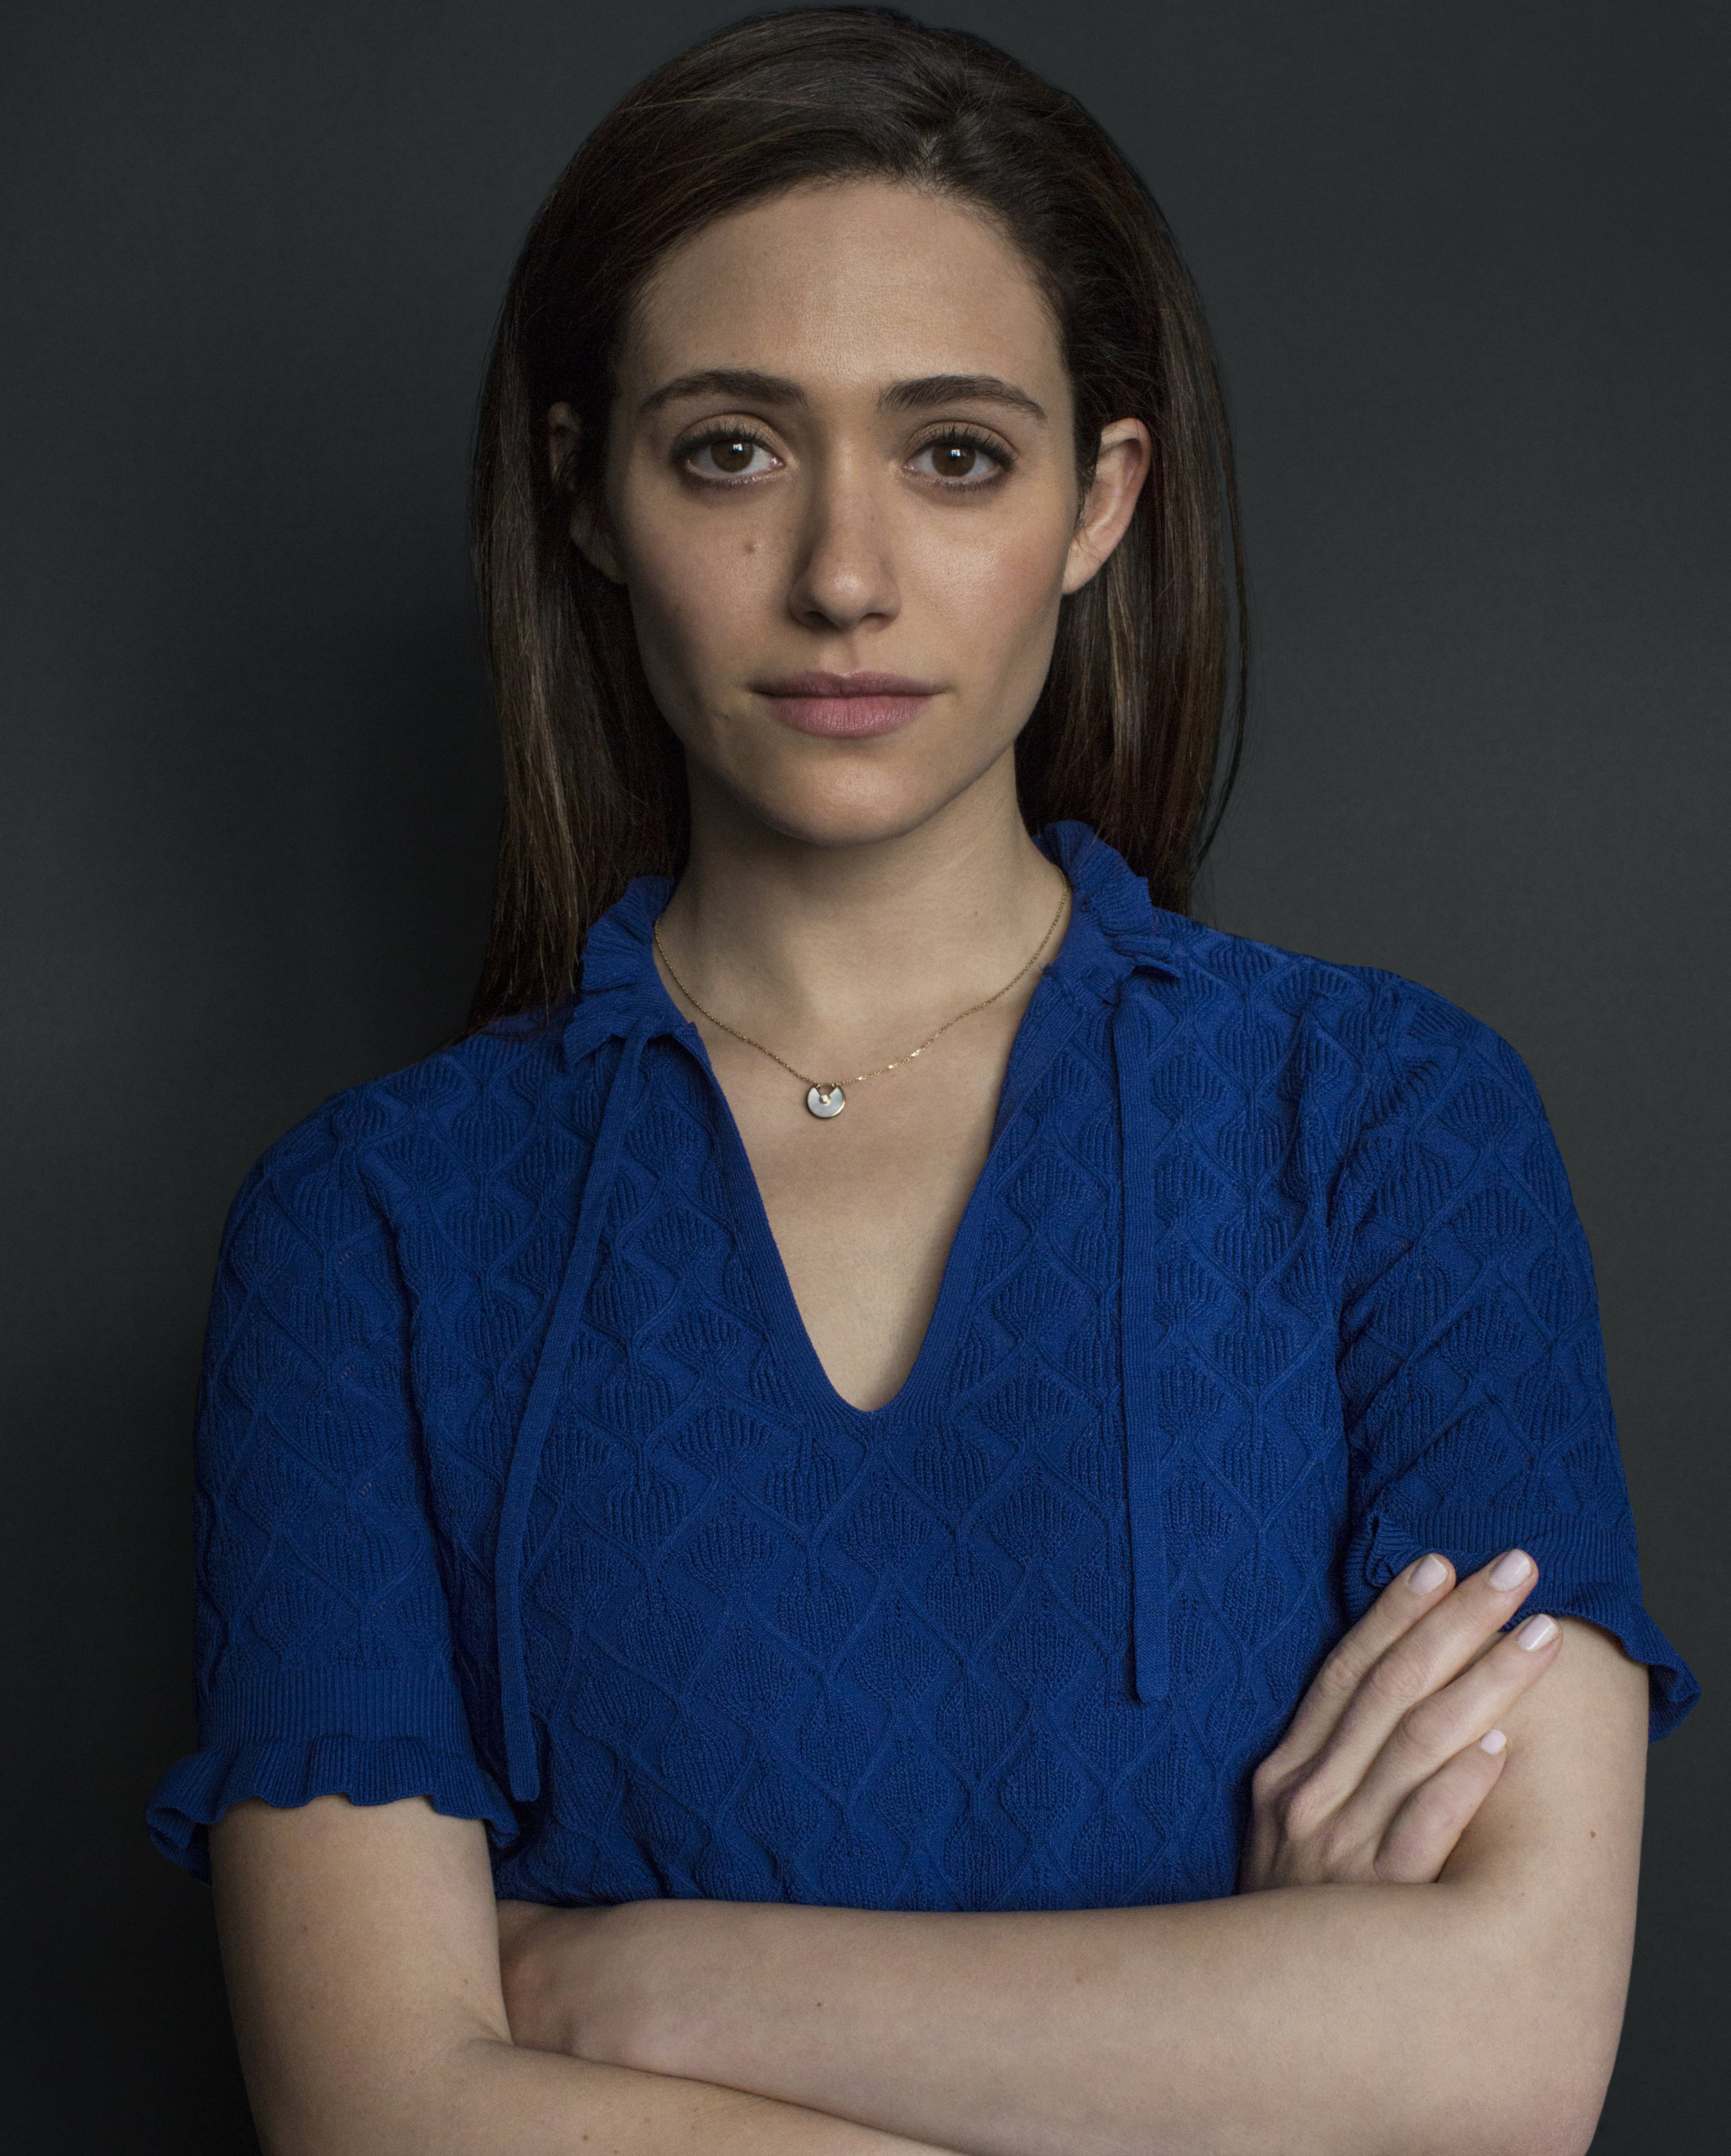 Emmy Rossum / Its harassment campaign